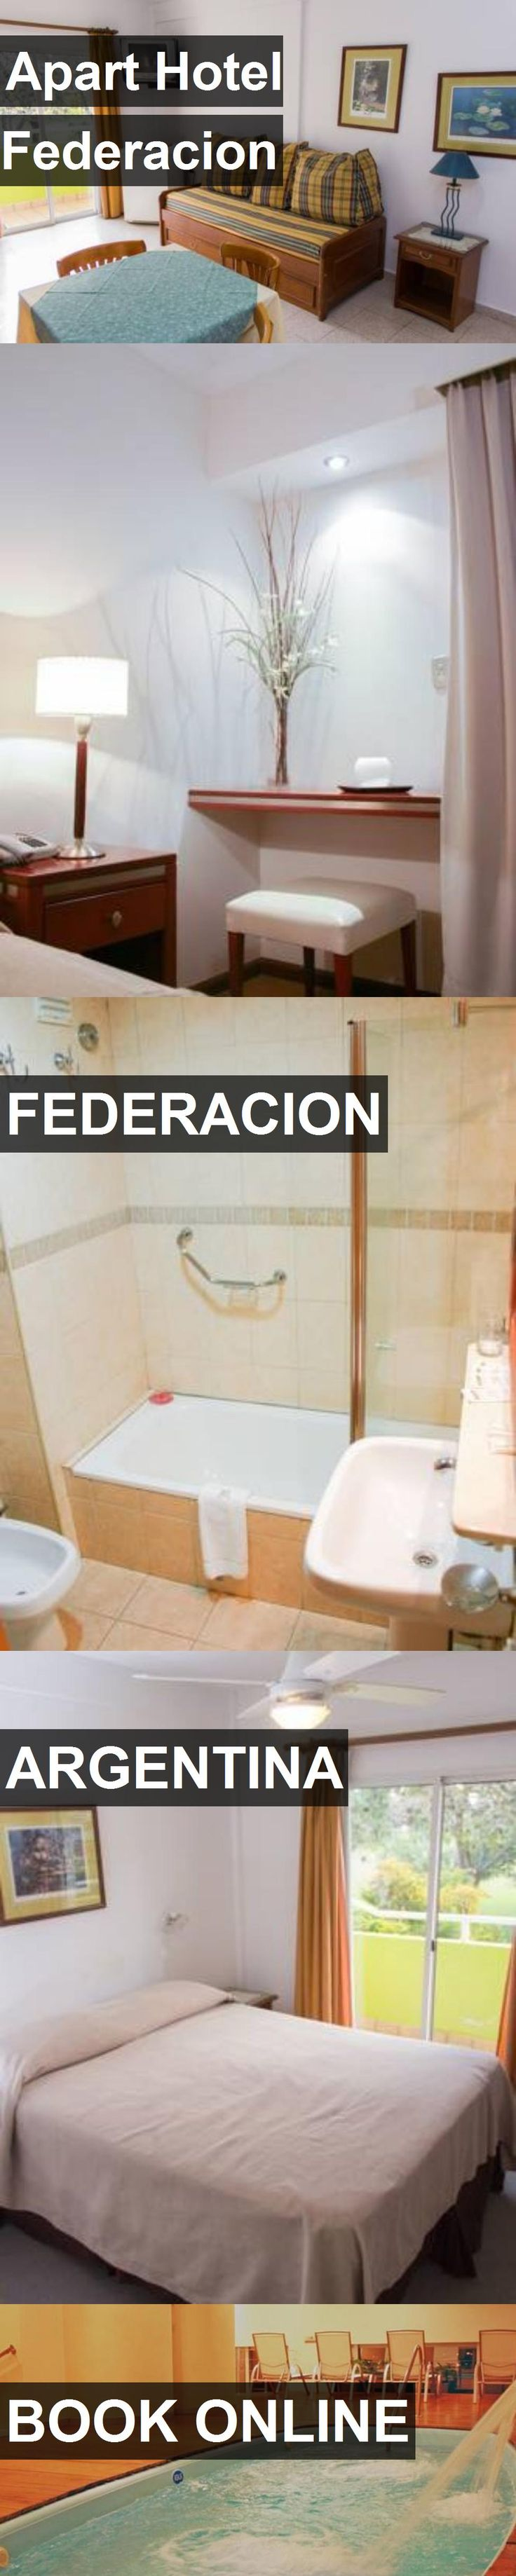 Apart Hotel Federacion in Federacion, Argentina. For more information, photos, reviews and best prices please follow the link. #Argentina #Federacion #travel #vacation #hotel